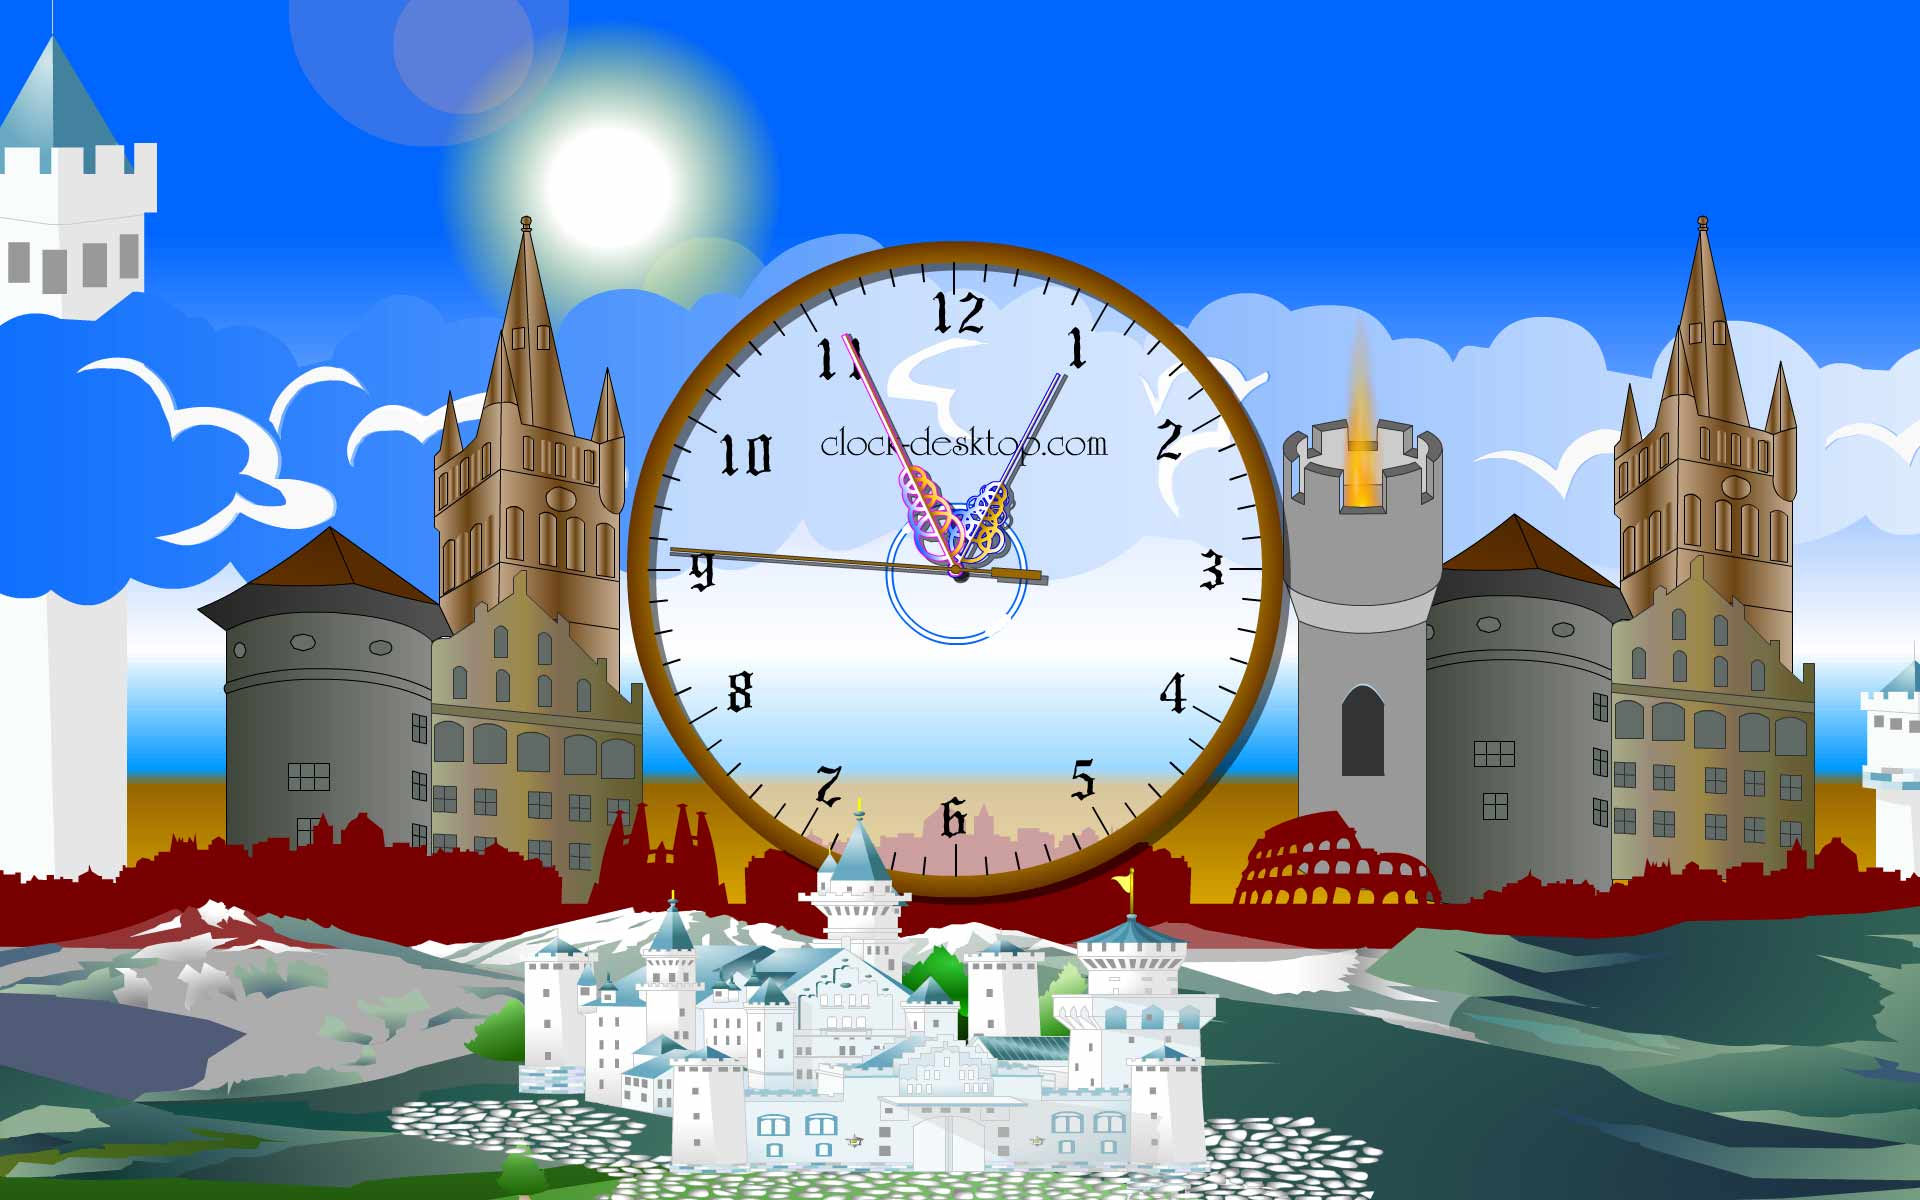 screensaver clock castle images image software 1920x1200 1920x1200